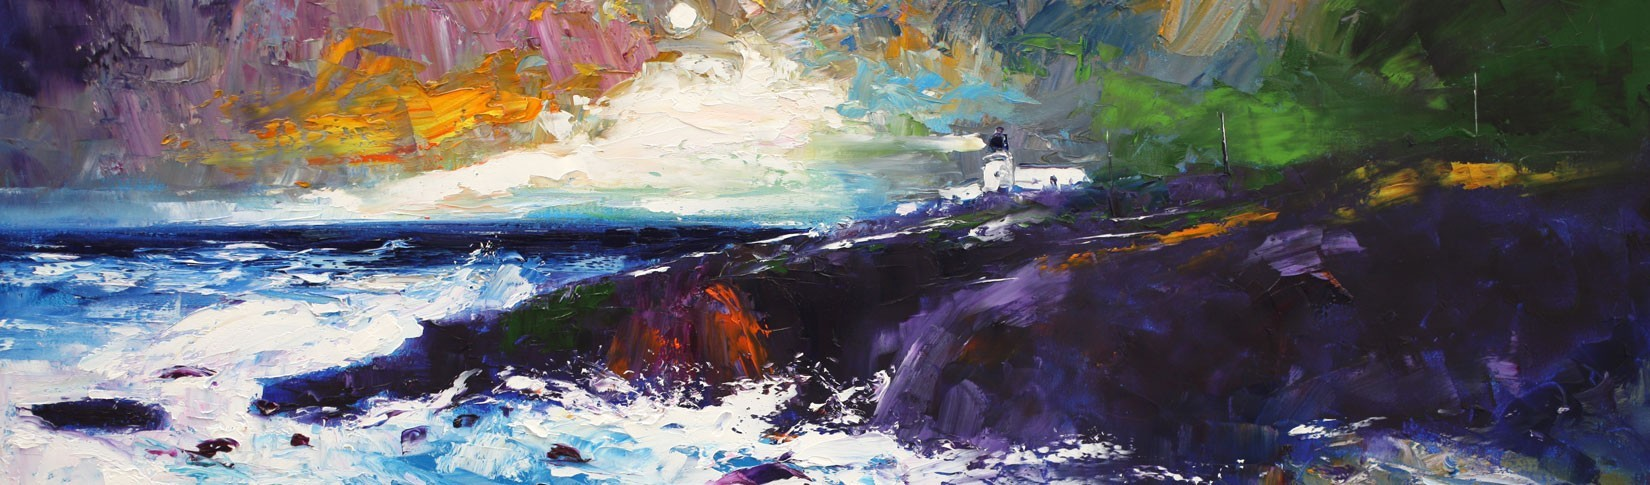 Scottish contemporary art exhibitions at Tolquhon Gallery near Aberdeen